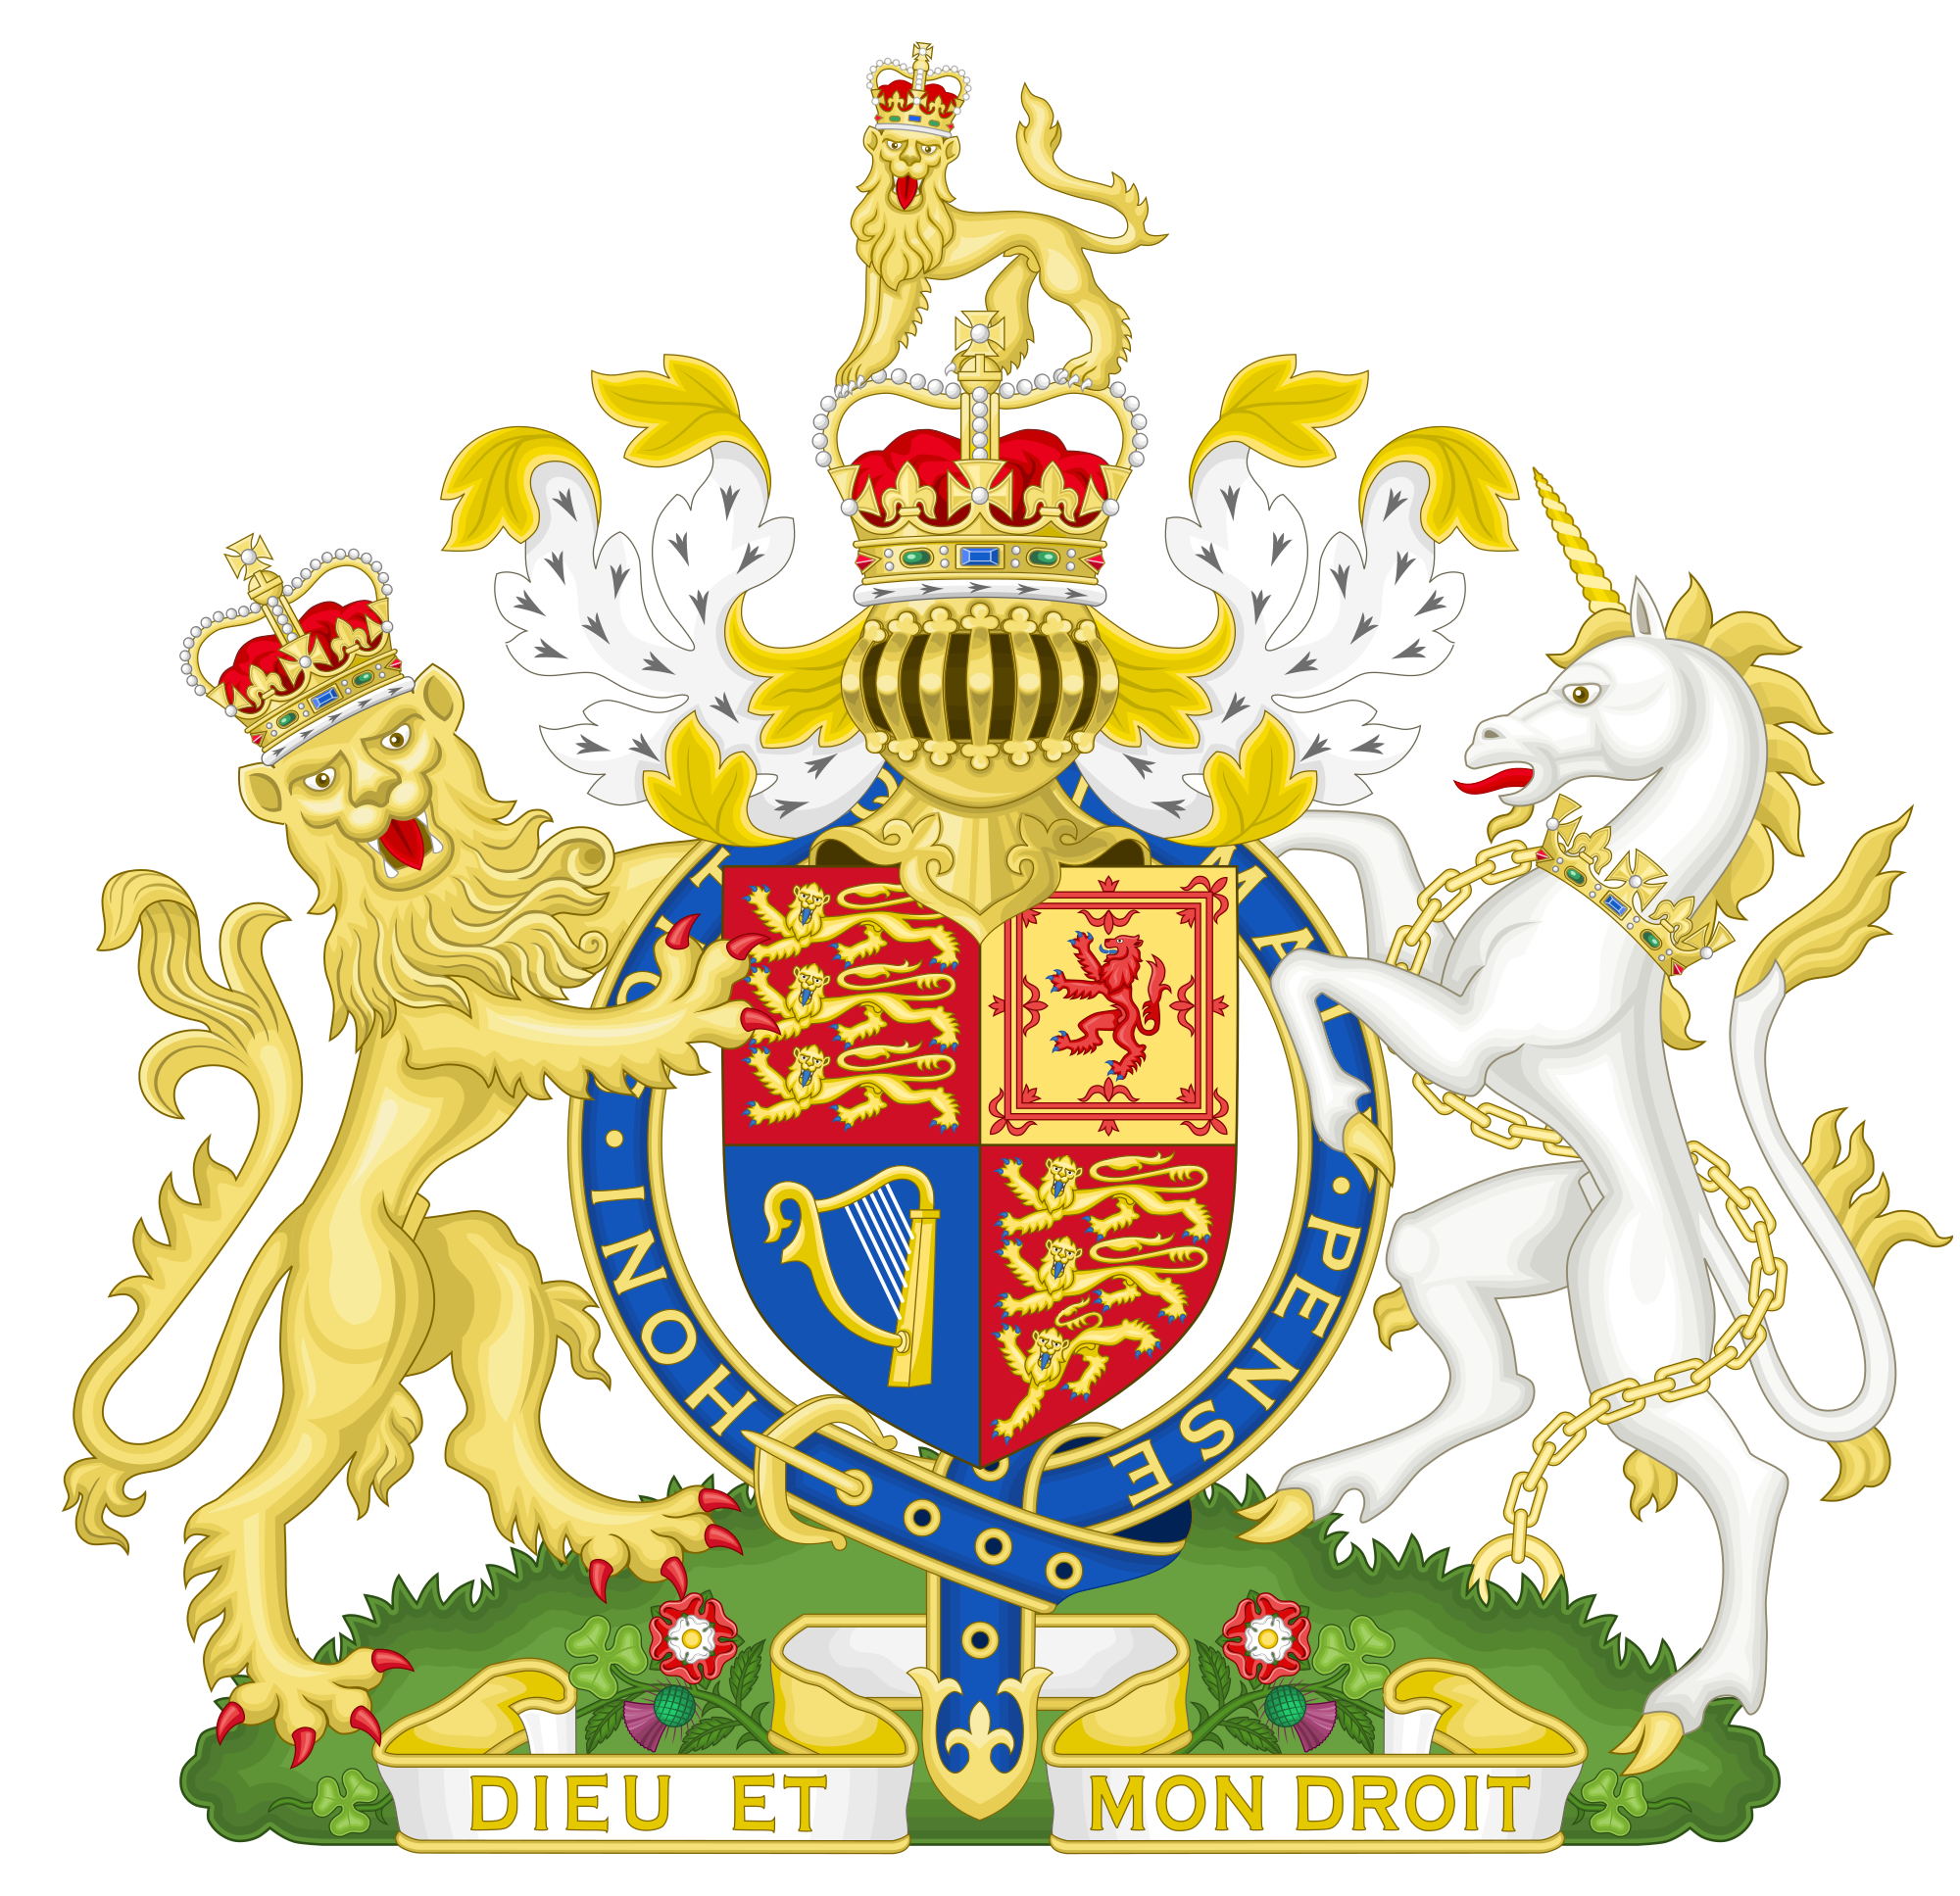 King s royal seal crown clipart jpg transparent stock Royal coat of arms of the United Kingdom - Wikipedia jpg transparent stock